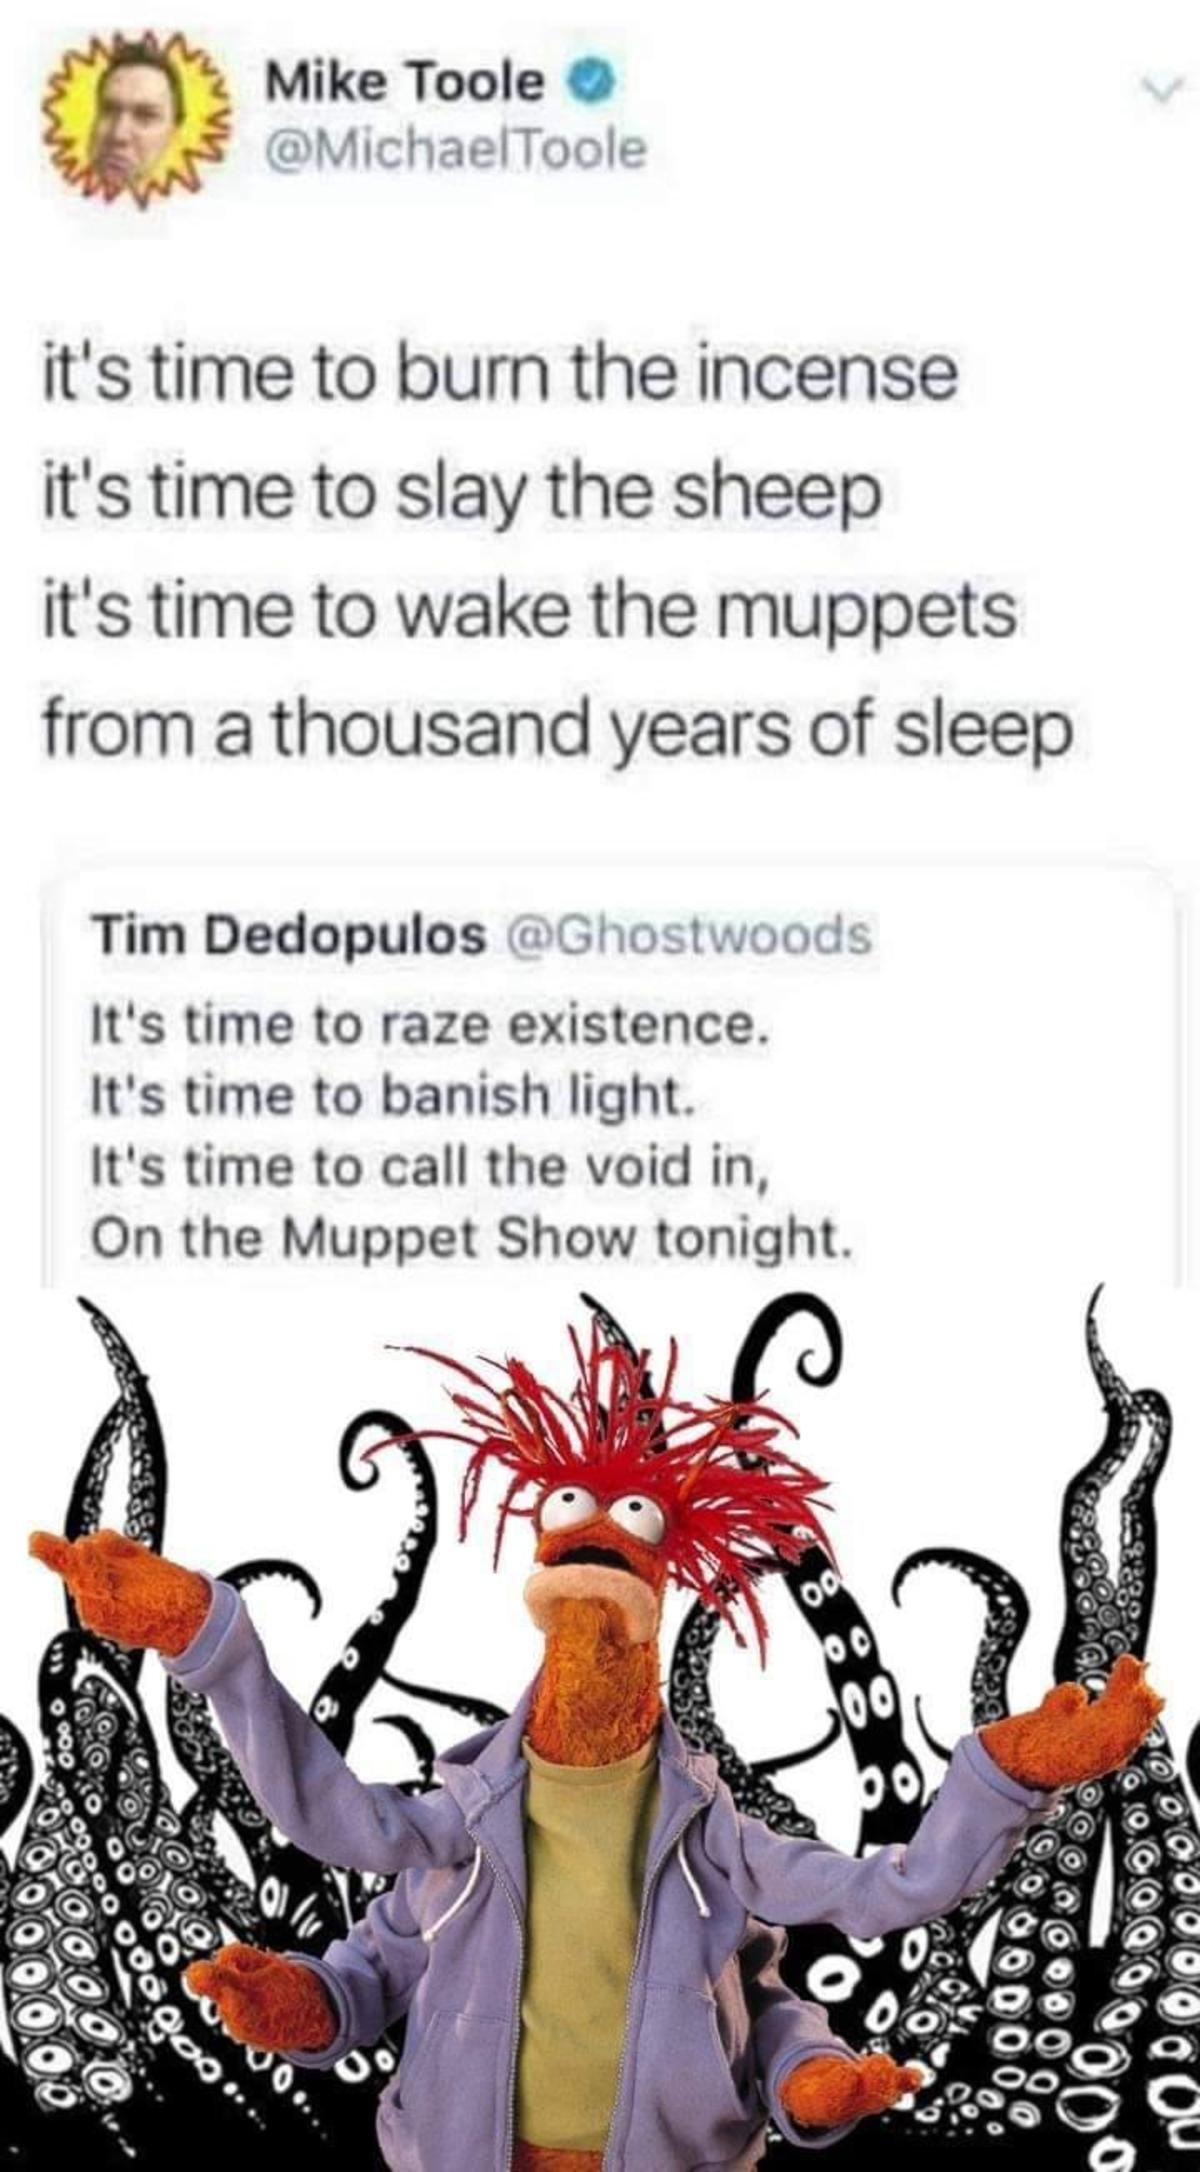 regular Anteater. .. Muppet Babies, we make our dreams come true Muppet Babies, we'll do the say for you Kermit: When your room looks kind of weird And you wish that you weren't the